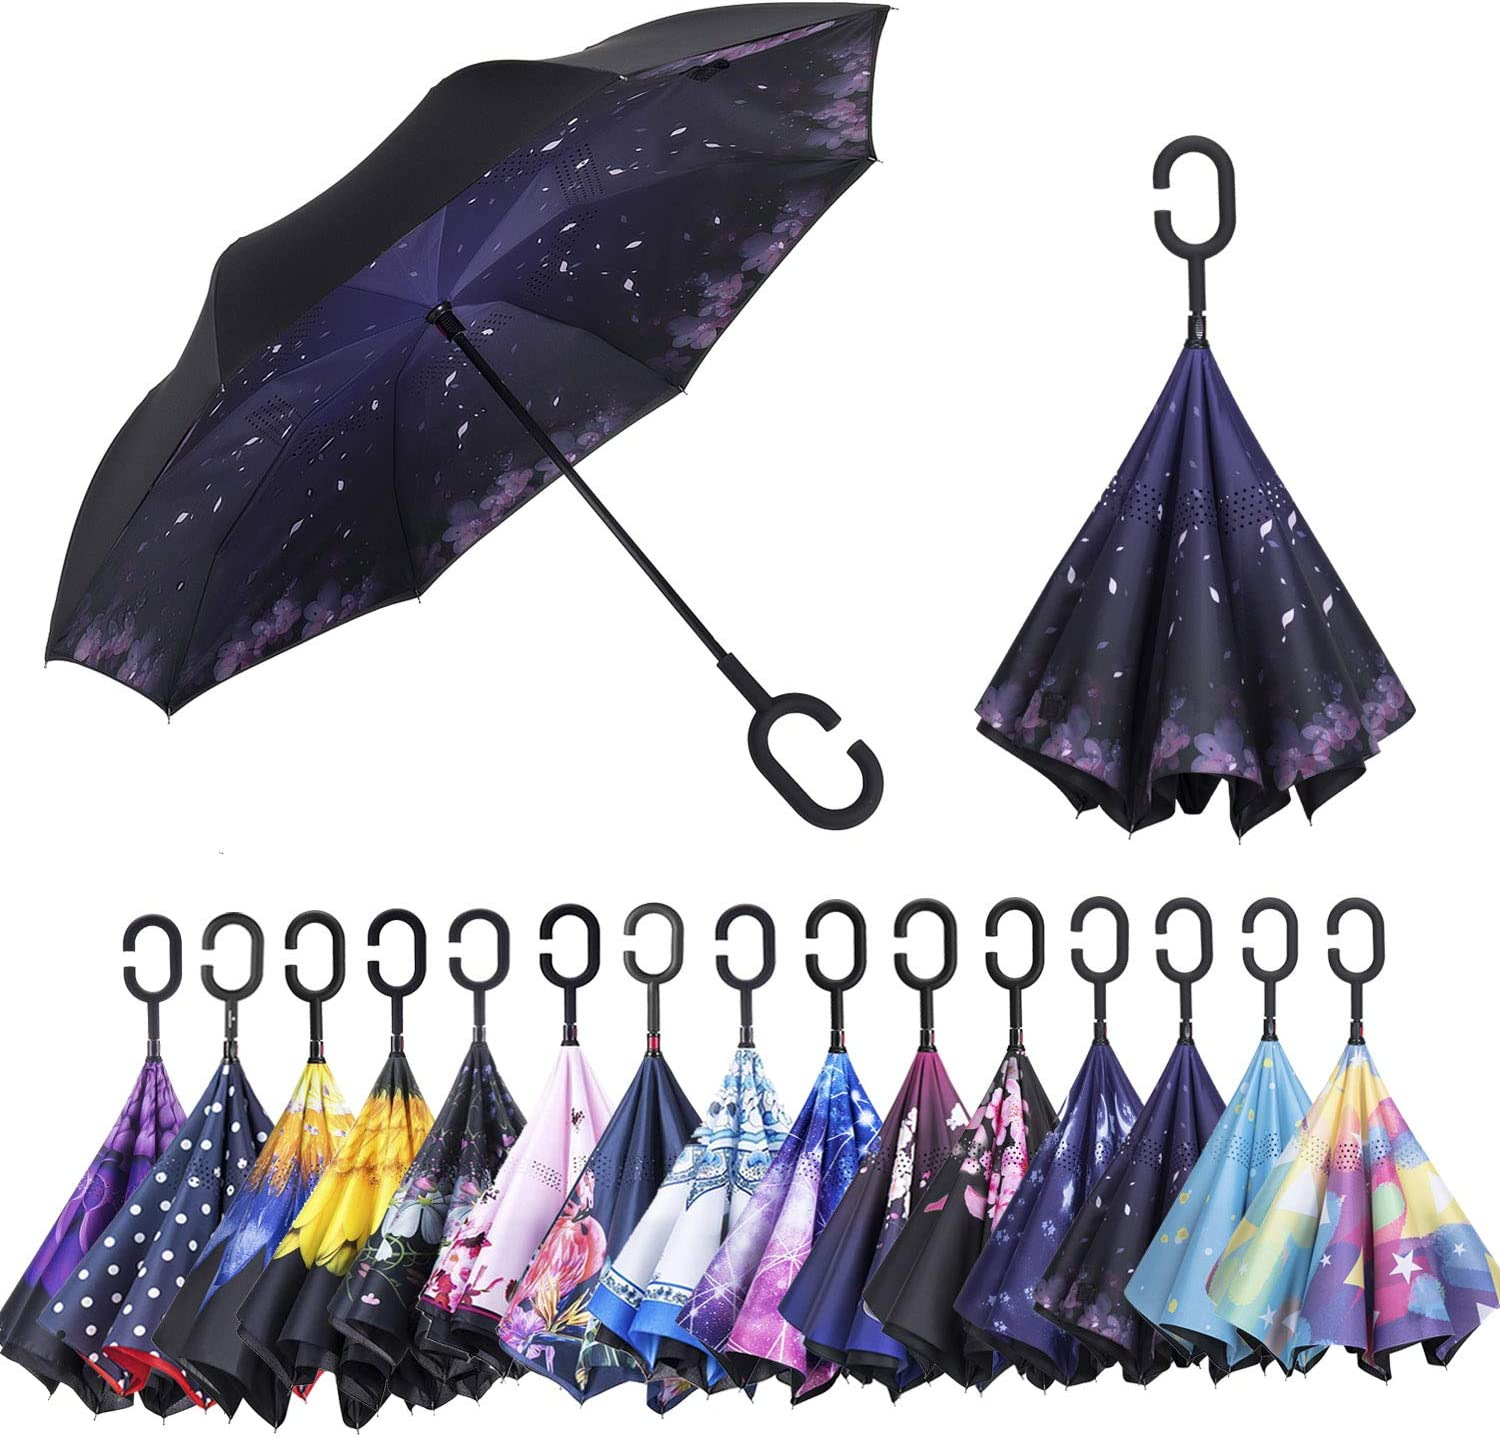 ONE PIECE Car Reverse Umbrella With C-Shaped Handle UV Protection Inverted Folding Umbrellas Windproof And Rainproof Double Folding Inverted Umbrella